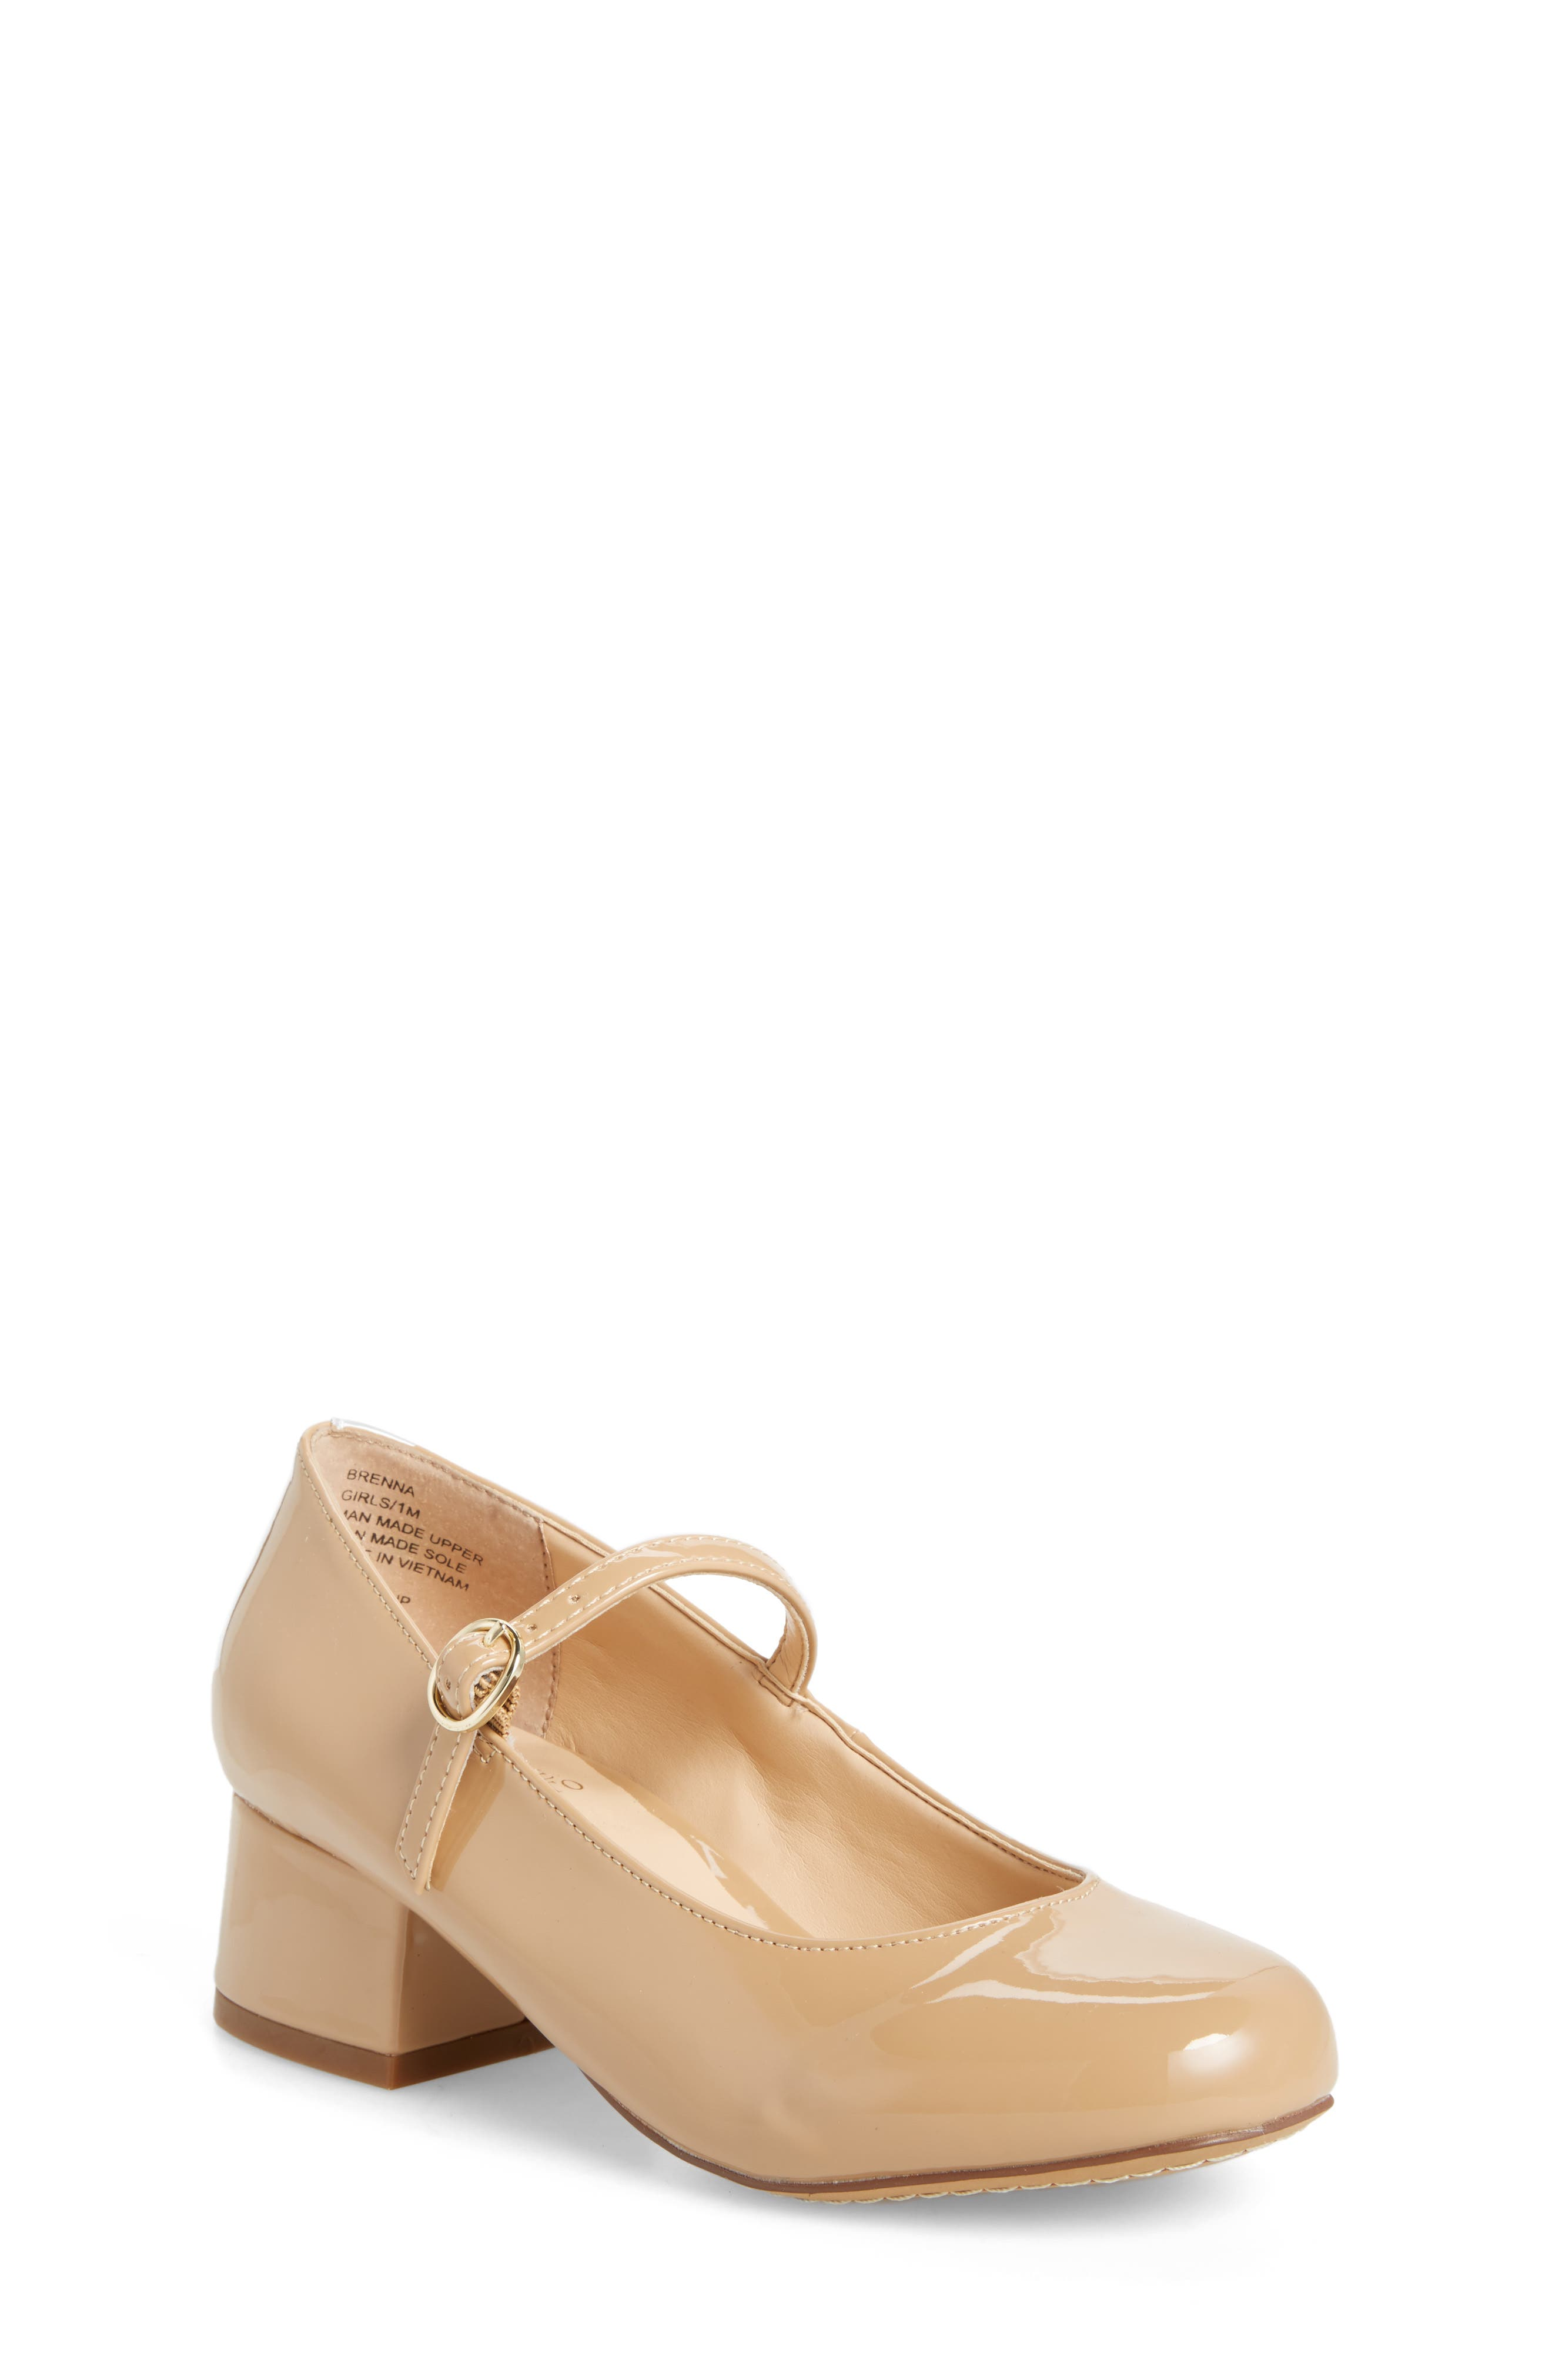 Brenna Mary Jane Pump,                             Main thumbnail 1, color,                             NUDE PATENT